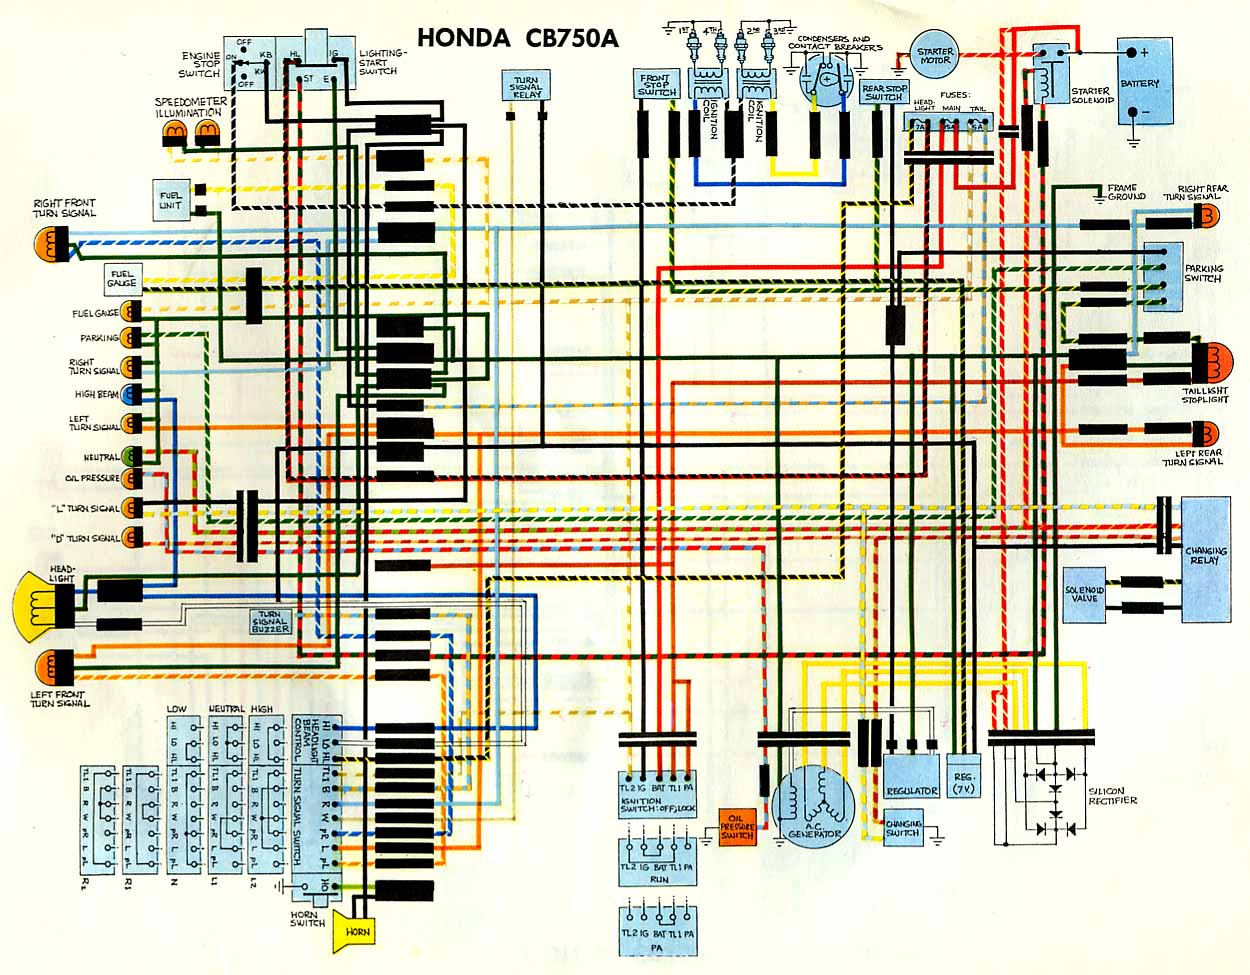 Wiring Diagrams 1976 Honda Motorcycle Wiring Schematics Honda Cb750  Ignition Wiring Diagram